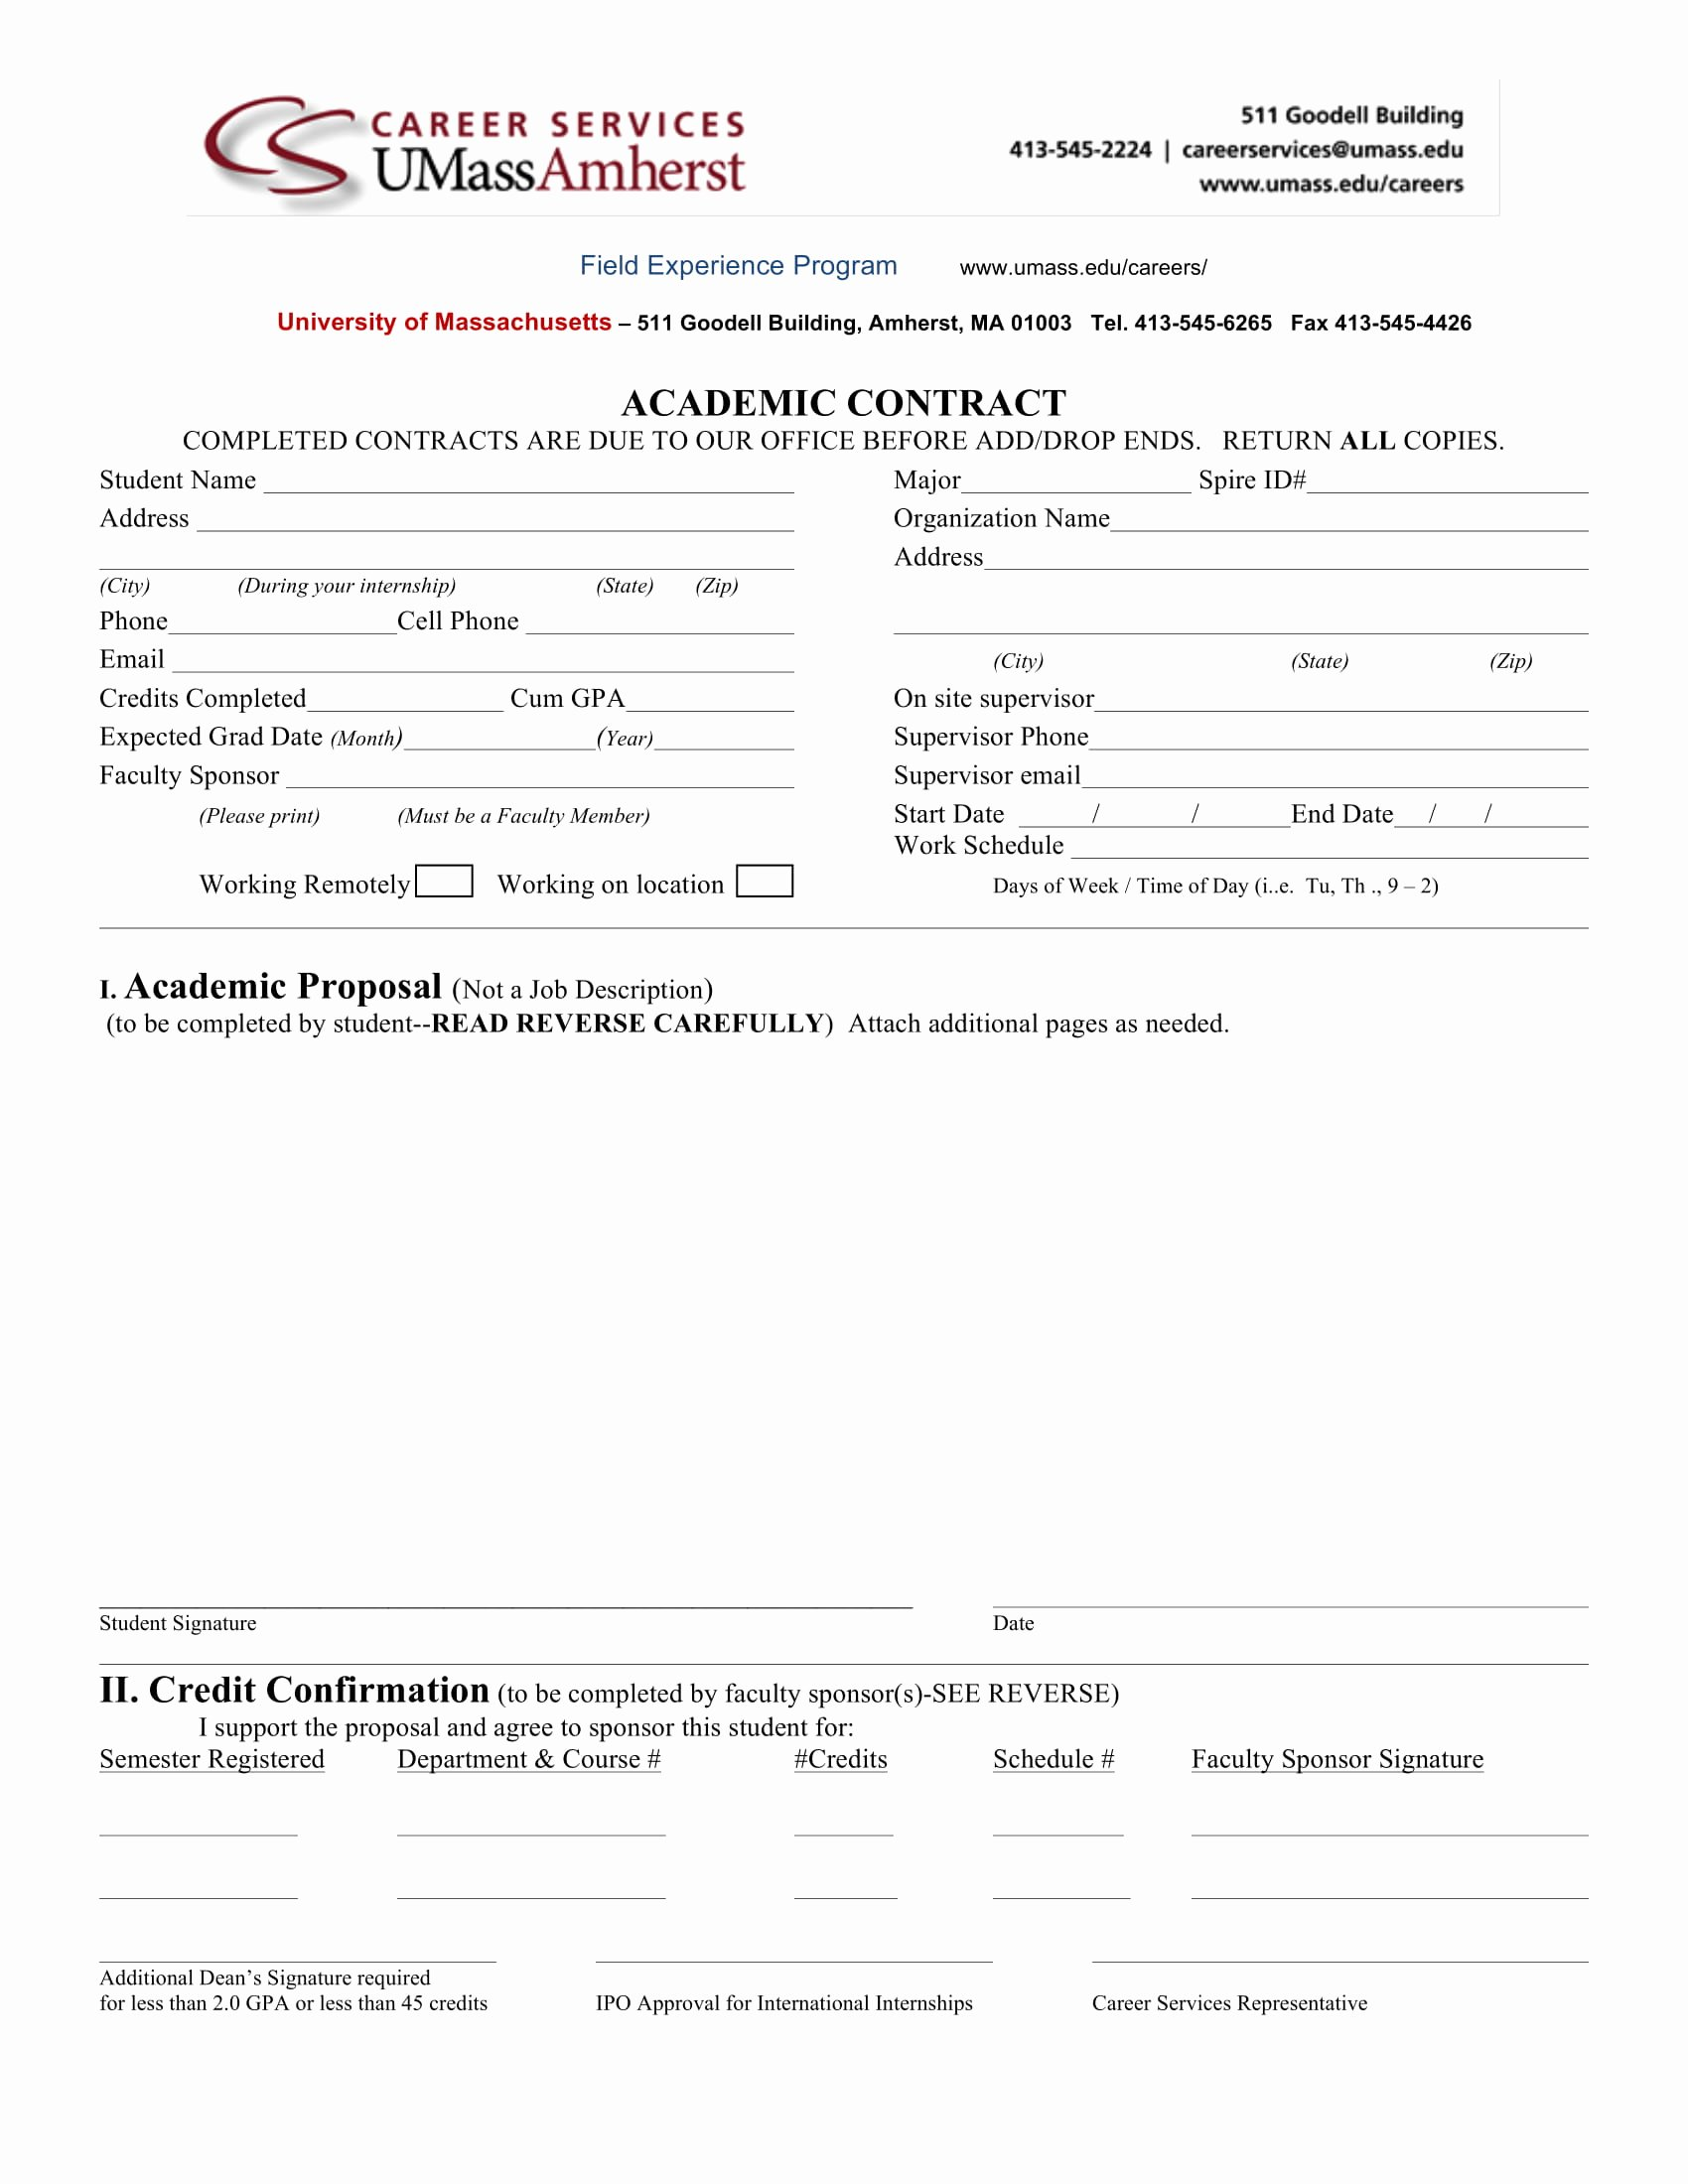 Student Academic Contract Template Inspirational 9 Student Academic Contract Template Examples Pdf